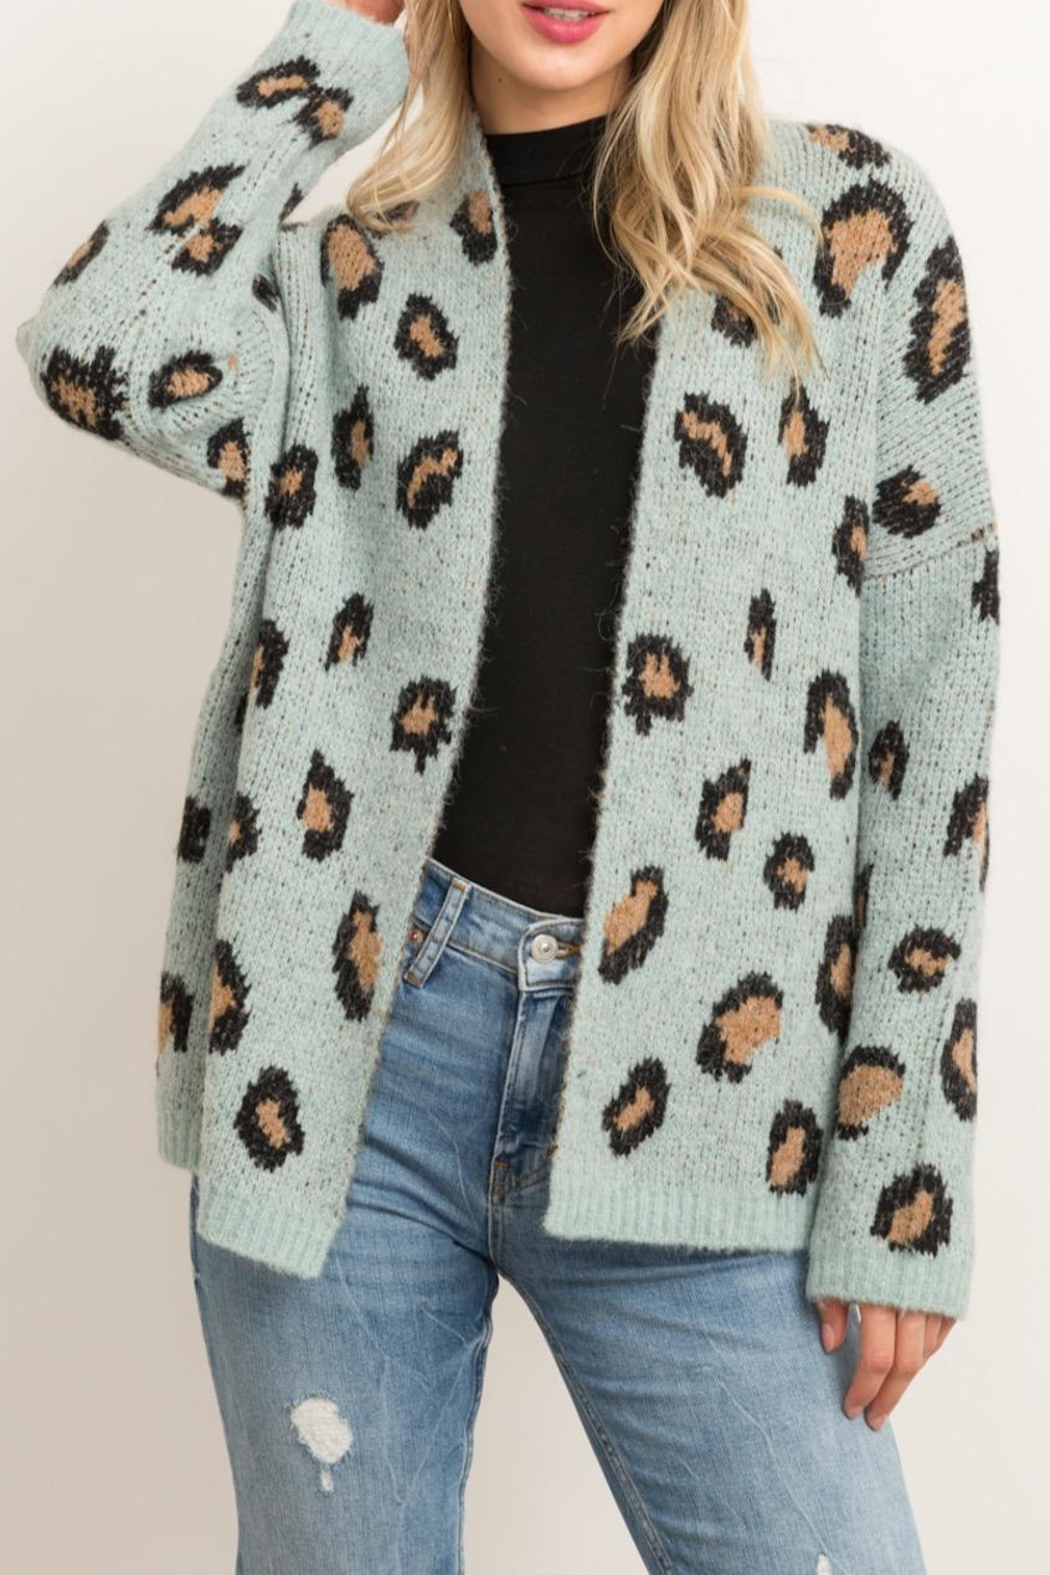 Hem & Thread Animal Print Cardigan - Main Image